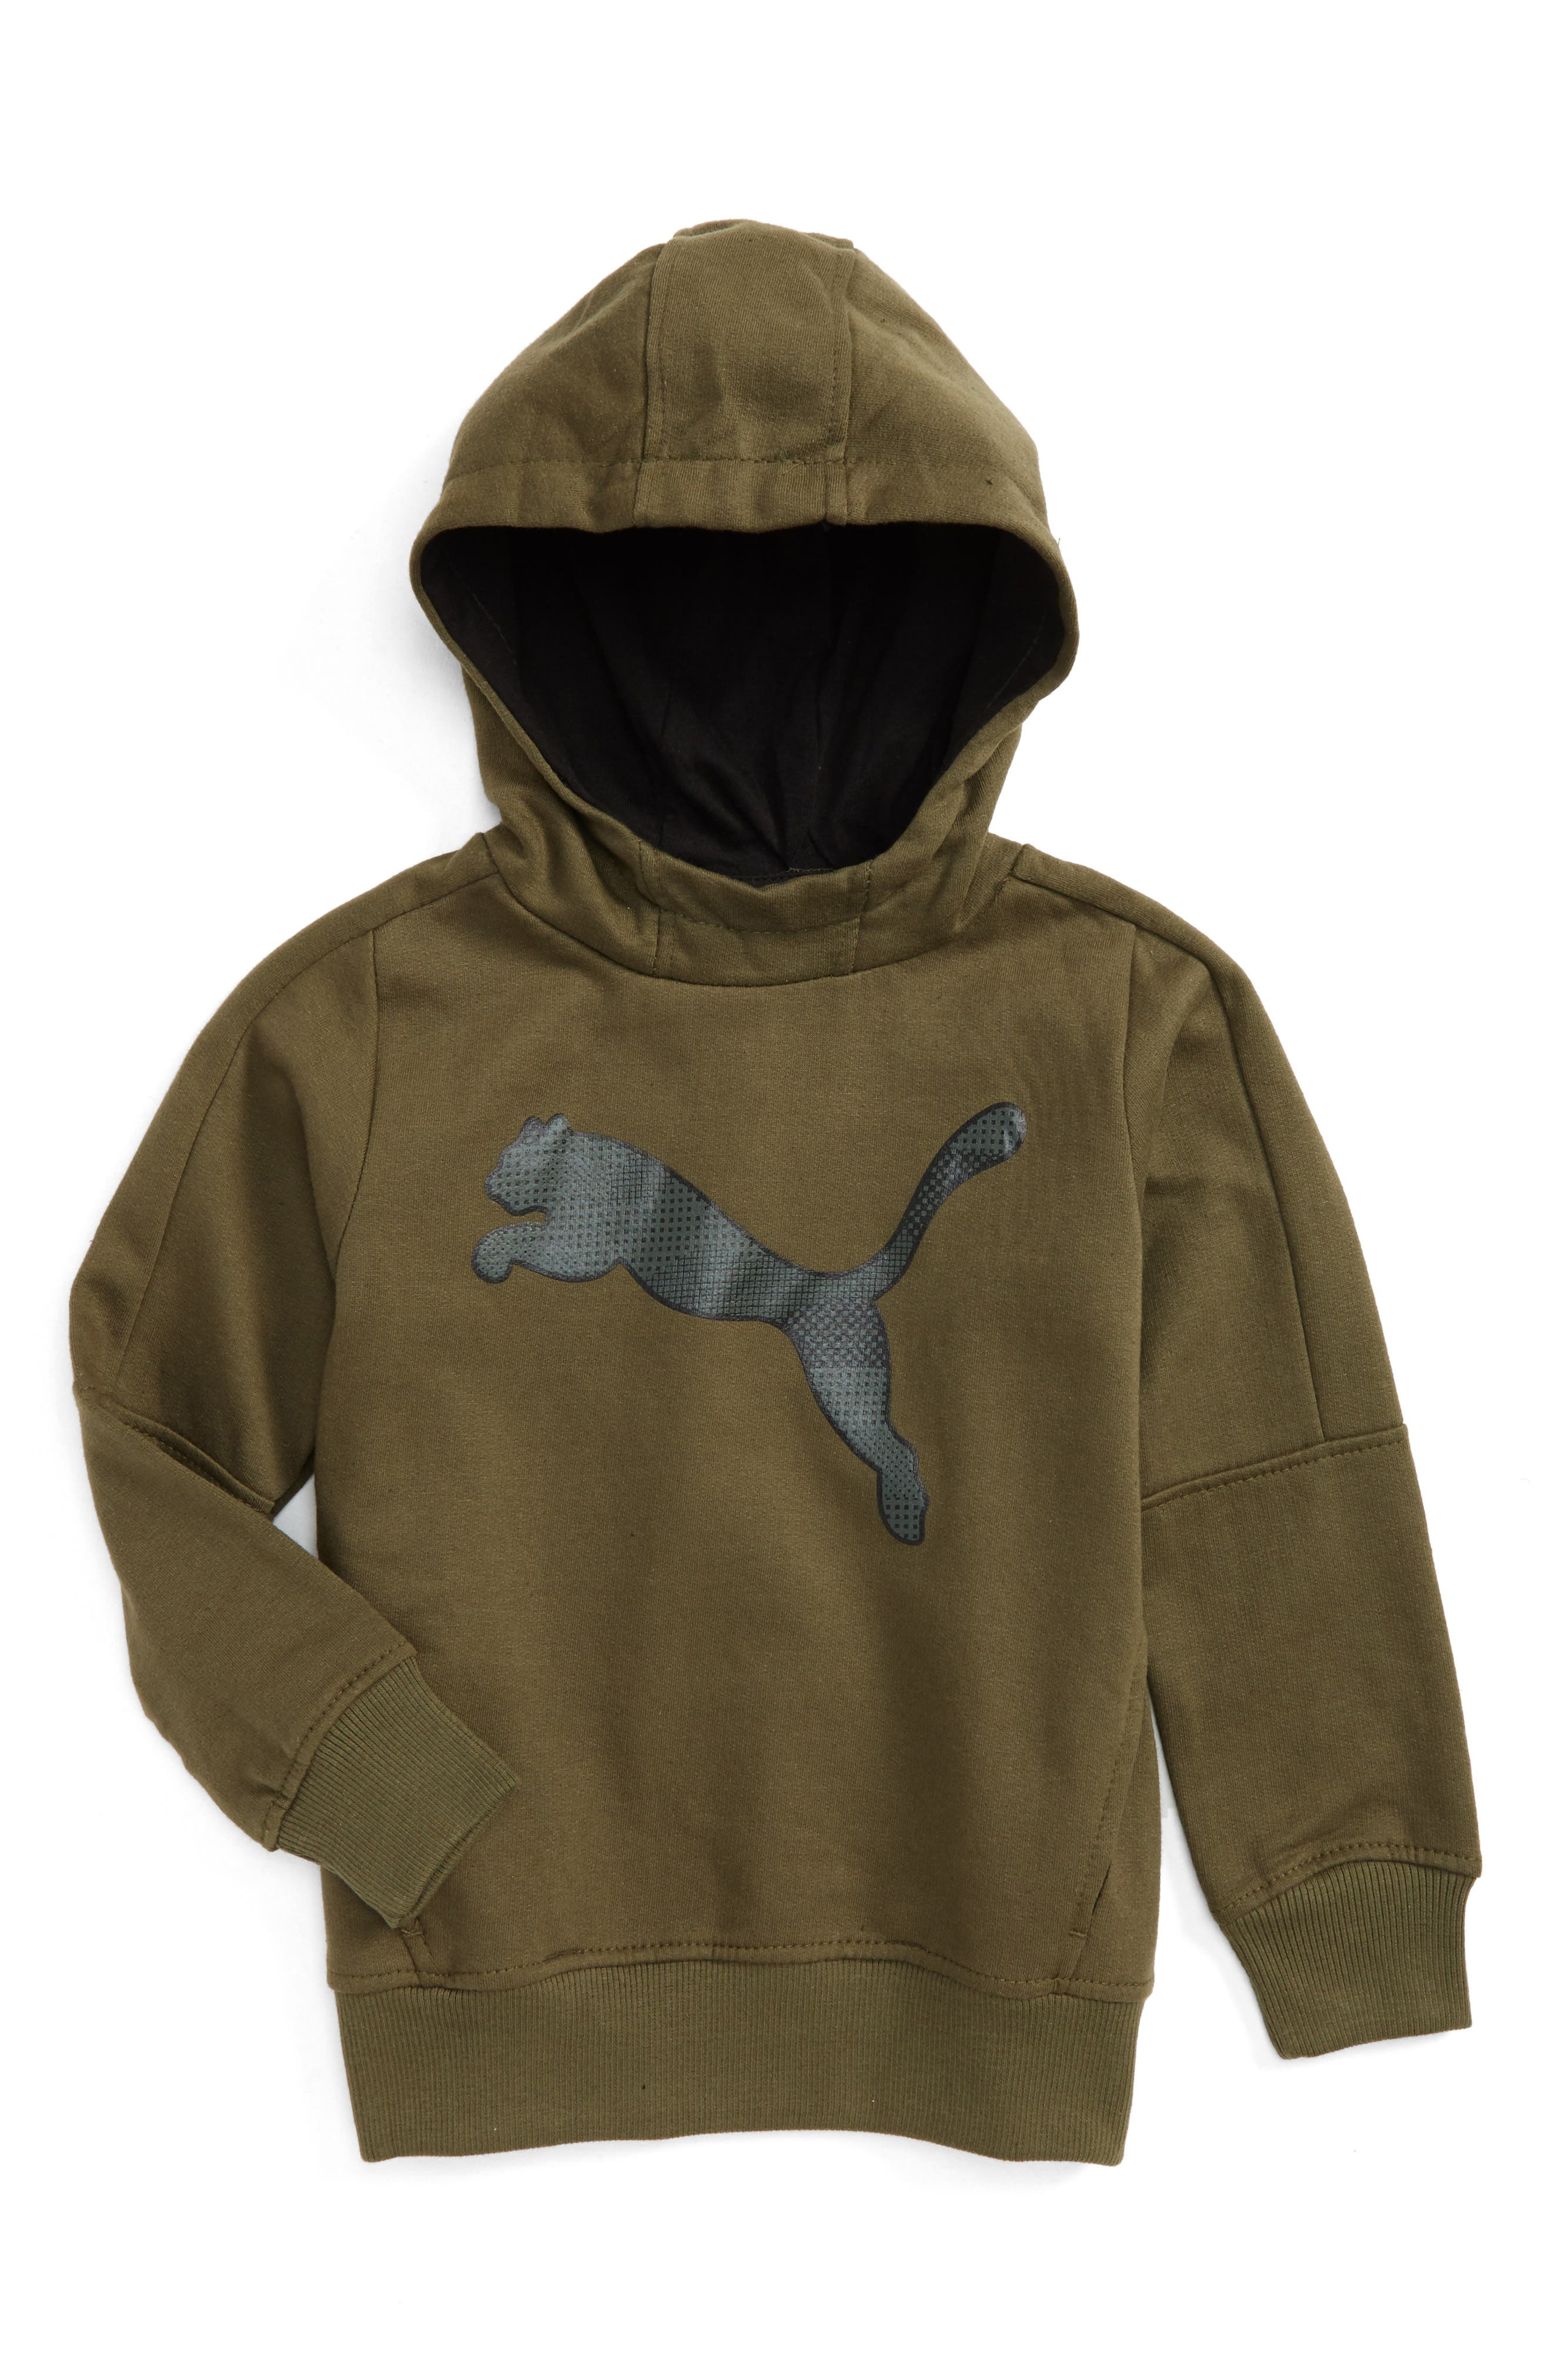 Alternate Image 1 Selected - PUMA Big Cat Graphic Hoodie (Little Boys)